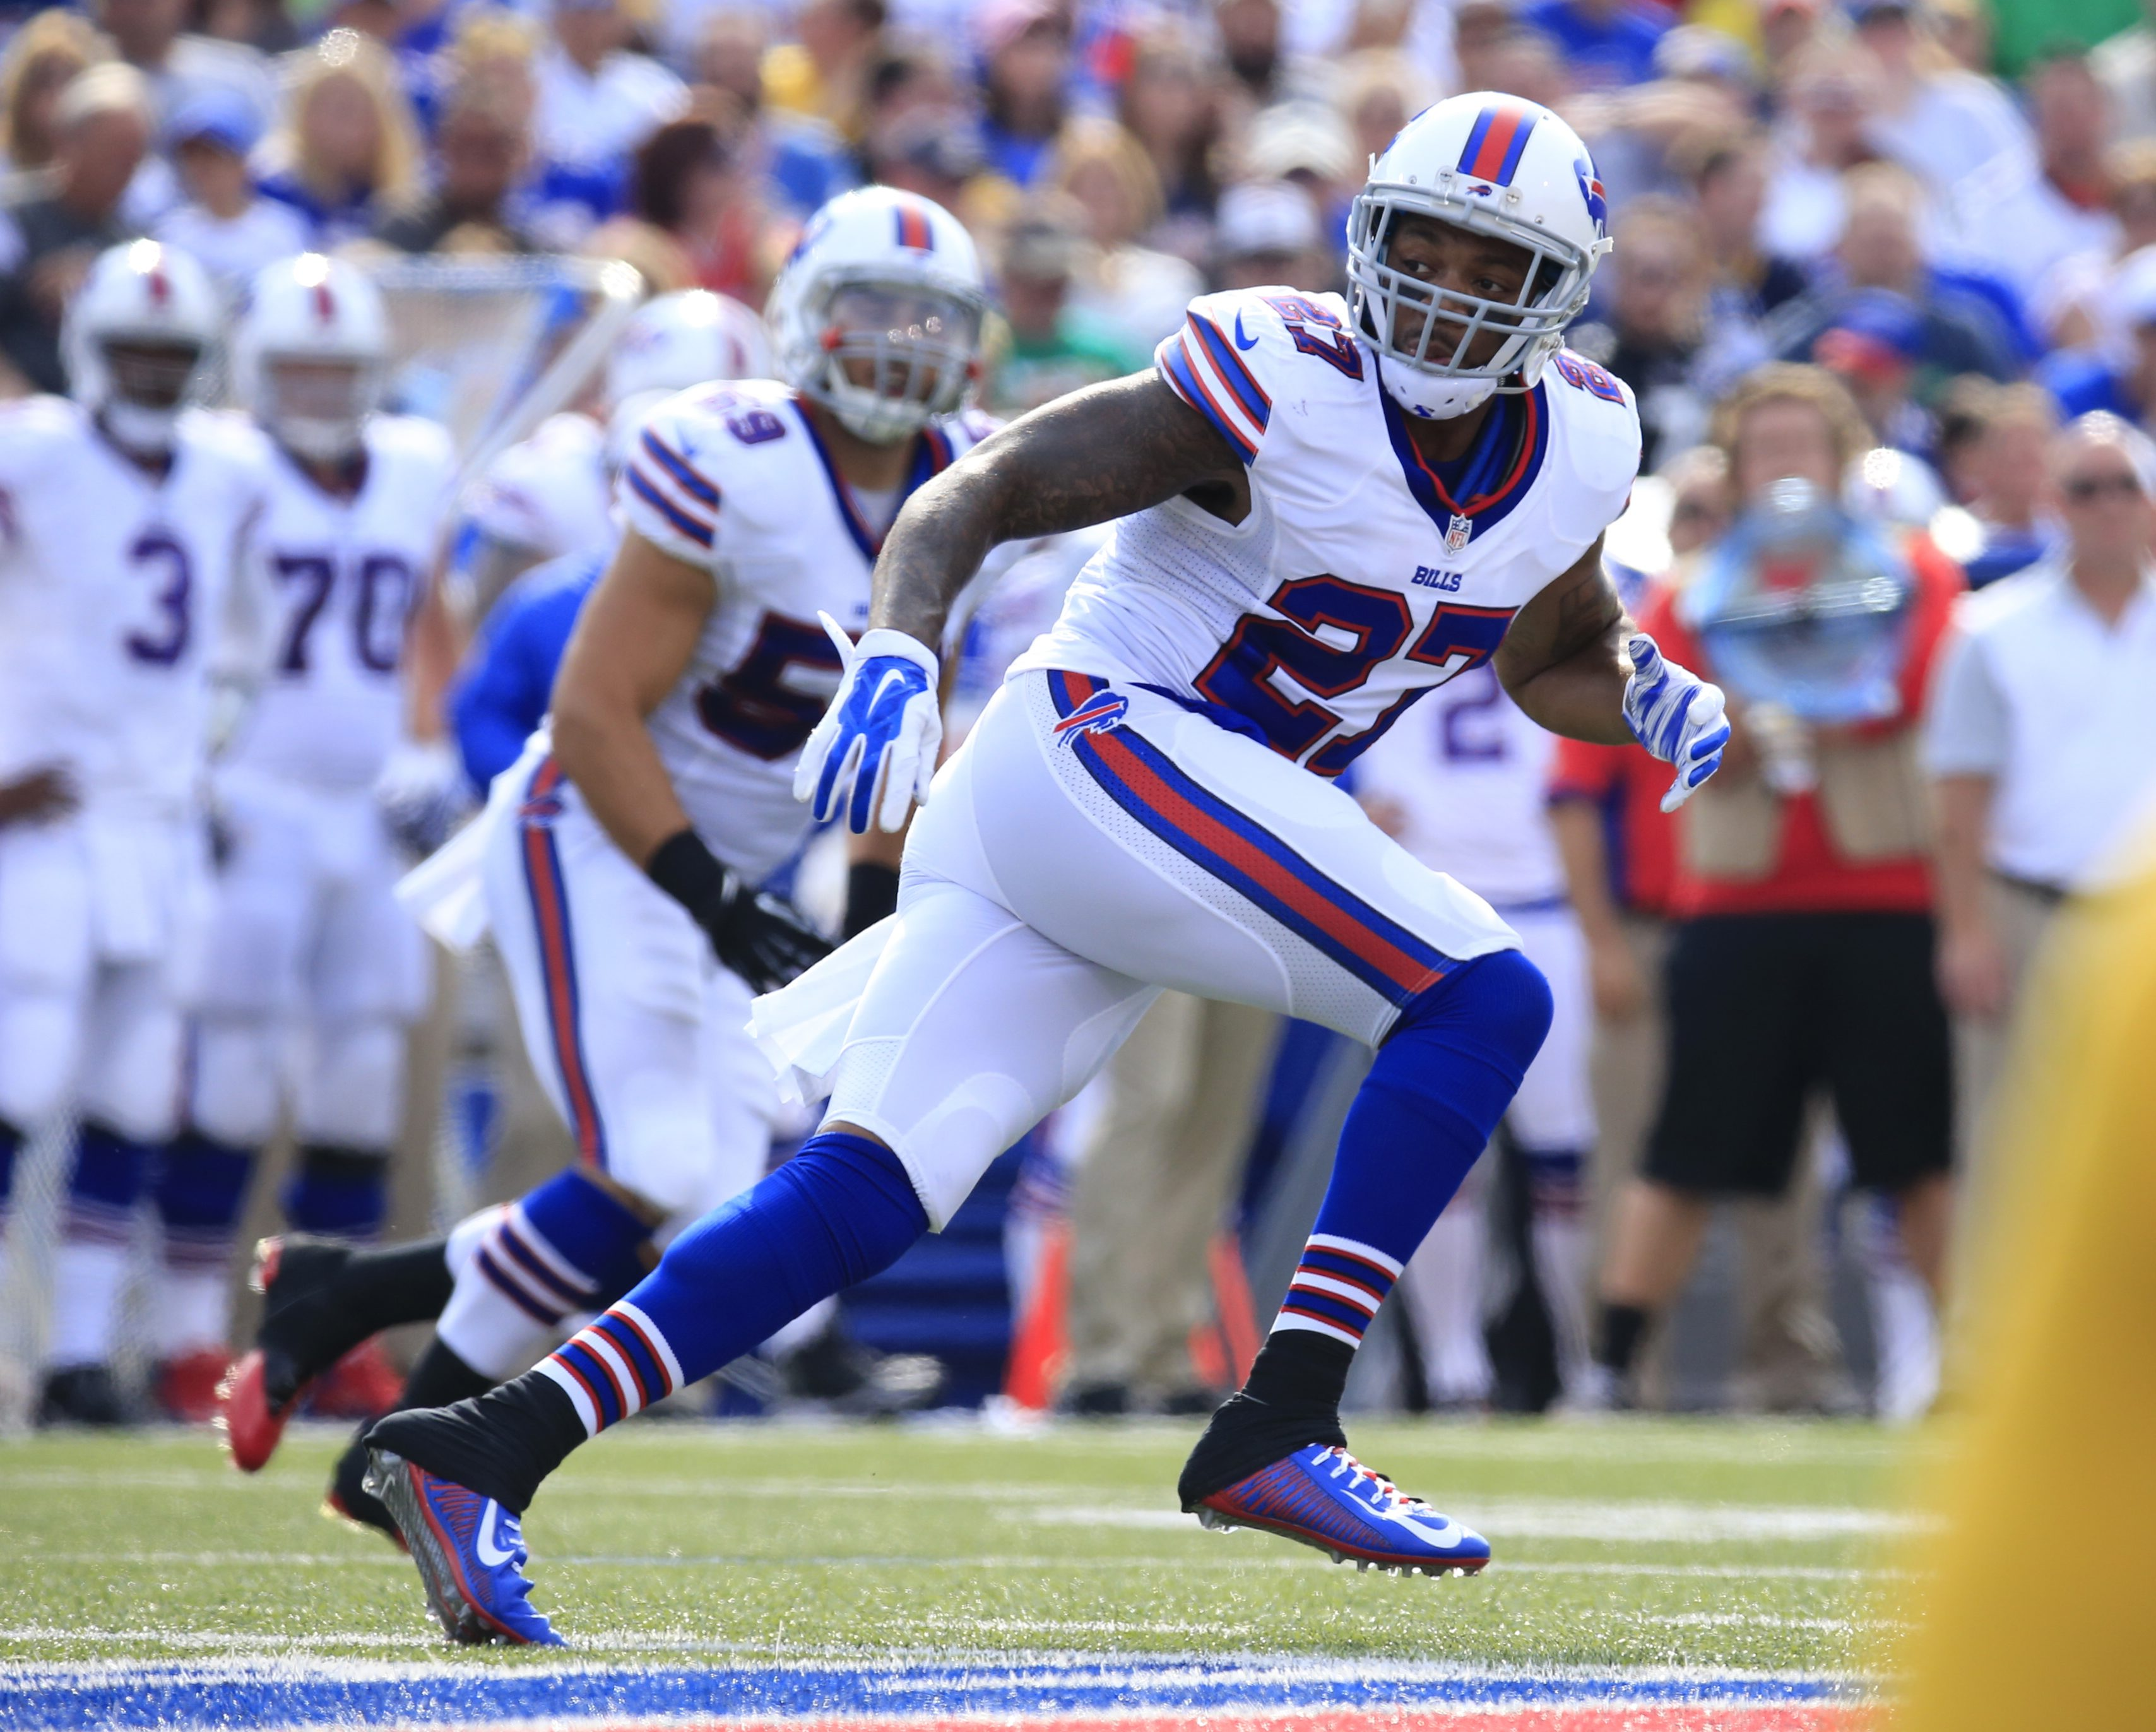 Bills safety Duke Williams knows he'll be used in many defensive situations even though he likely won't be starting games.